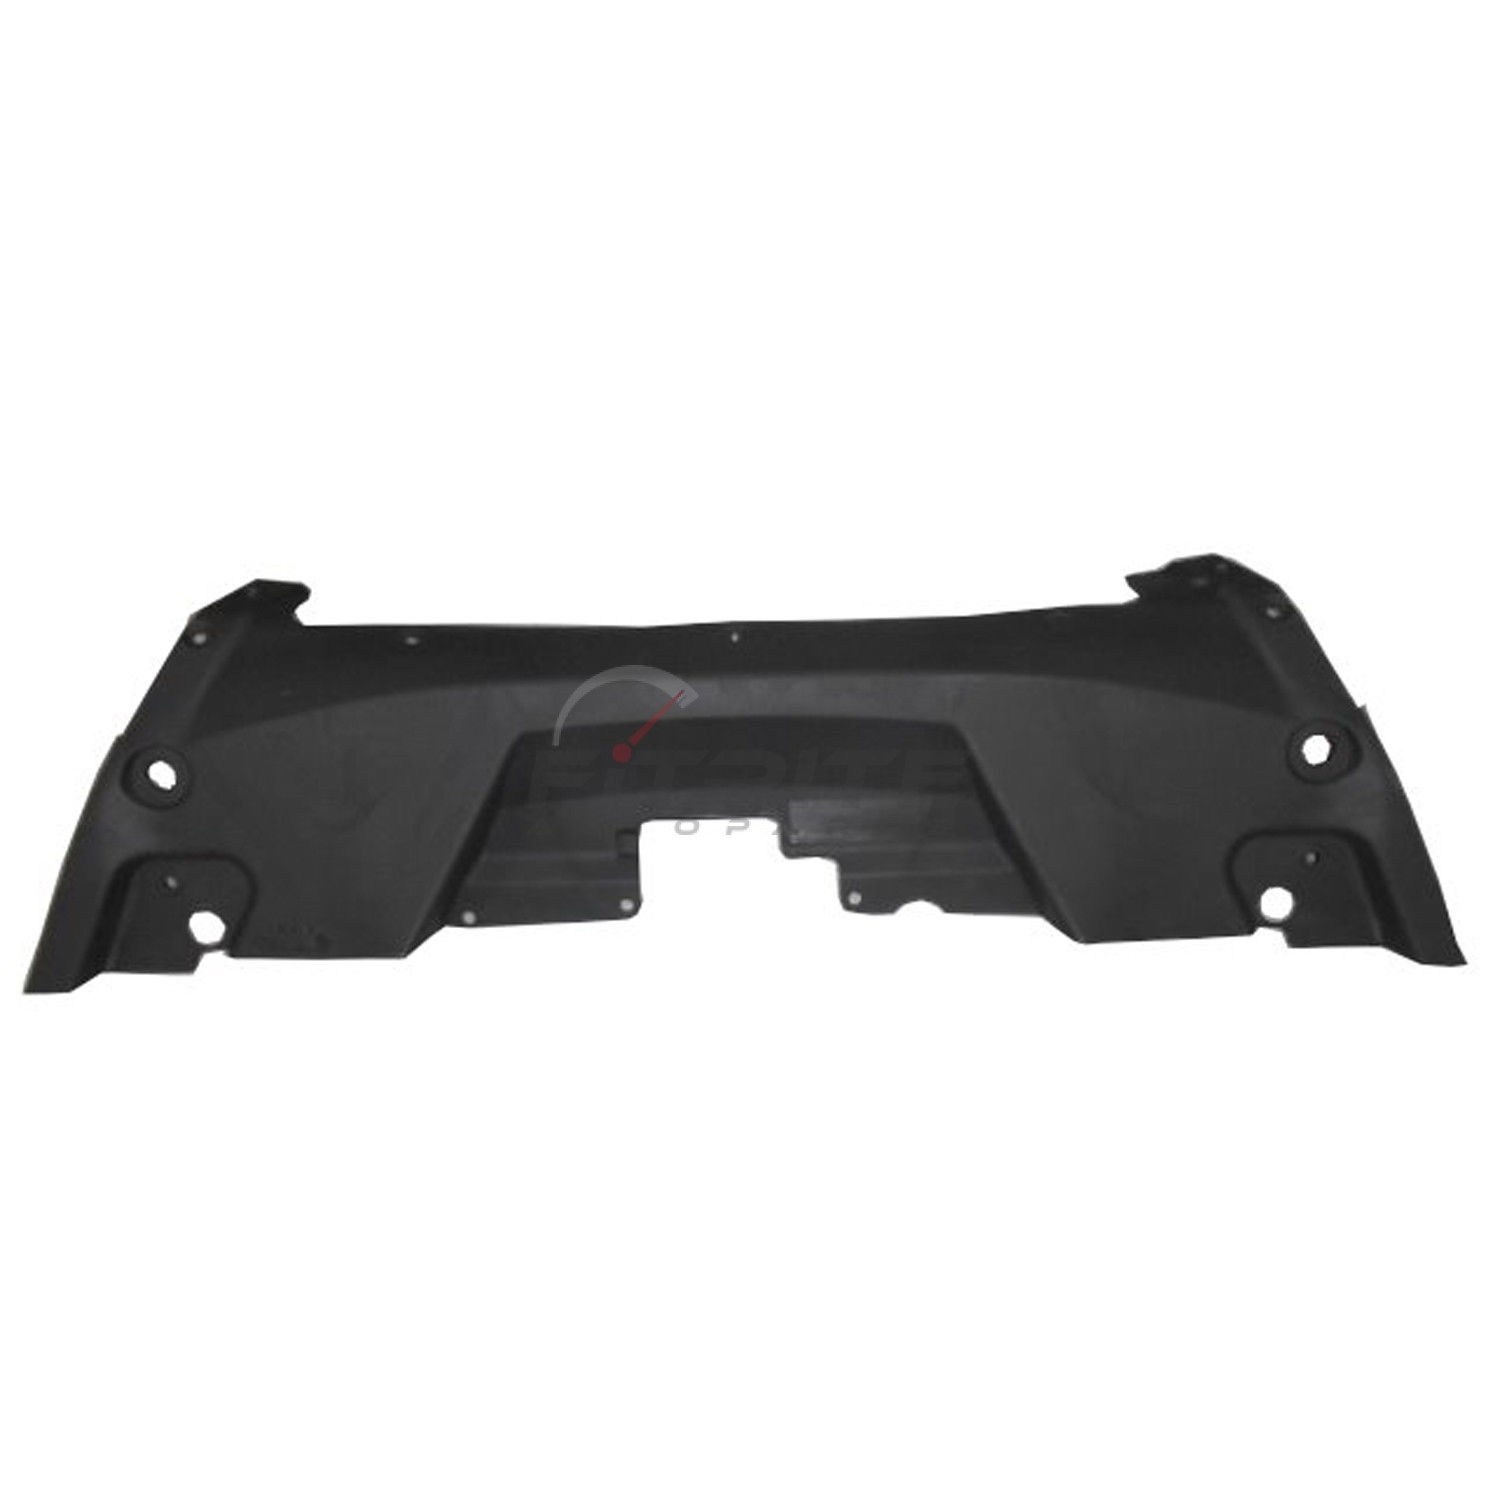 NEW UPPER RADIATOR SUPPORT COVER FITS 2015-2017 CHEVROLET SUBURBAN GM1224133